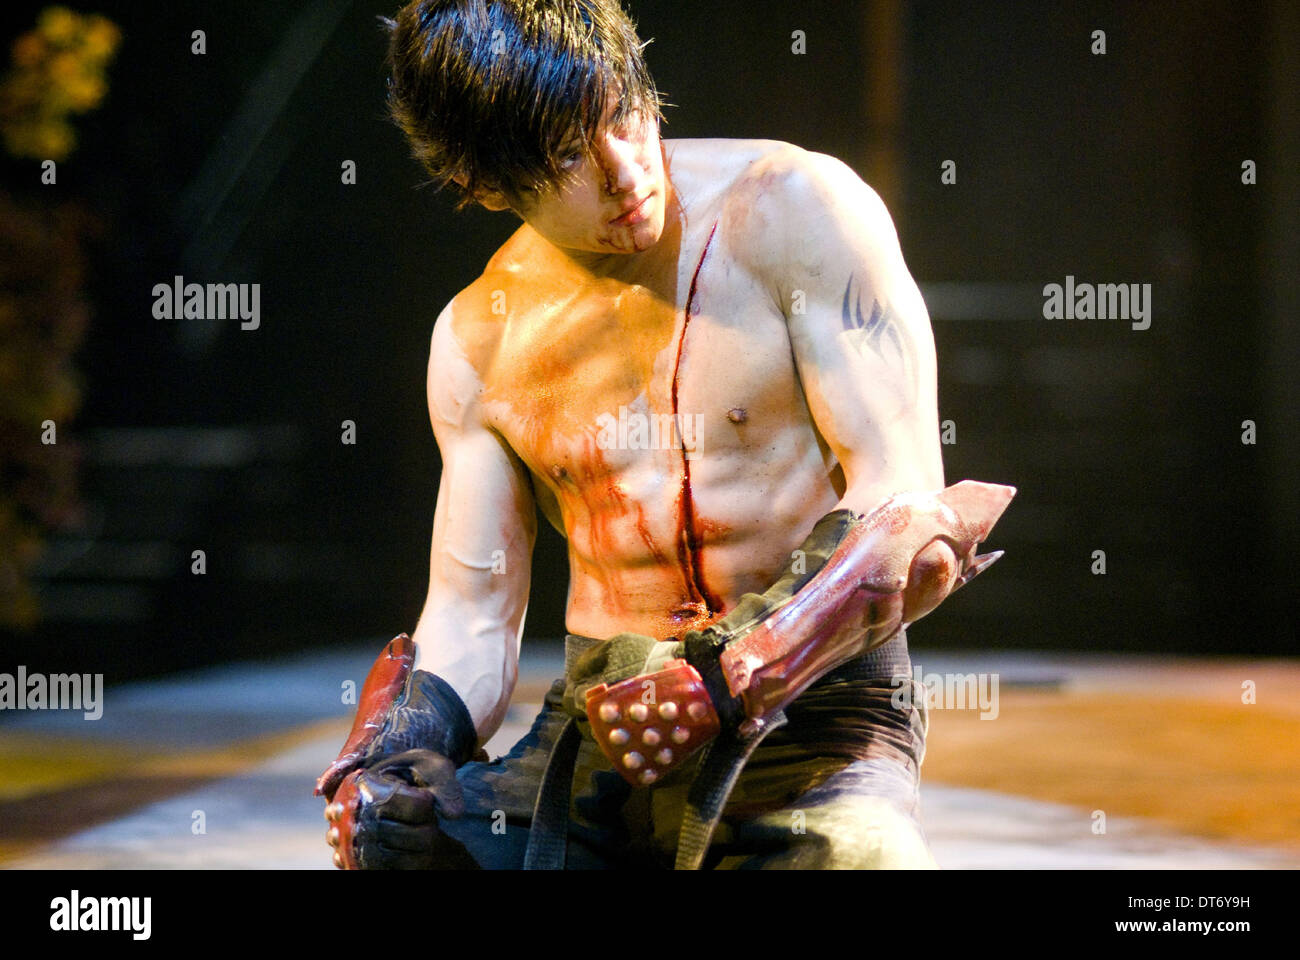 Jon Foo Tekken 2010 Stock Photo 66535997 Alamy